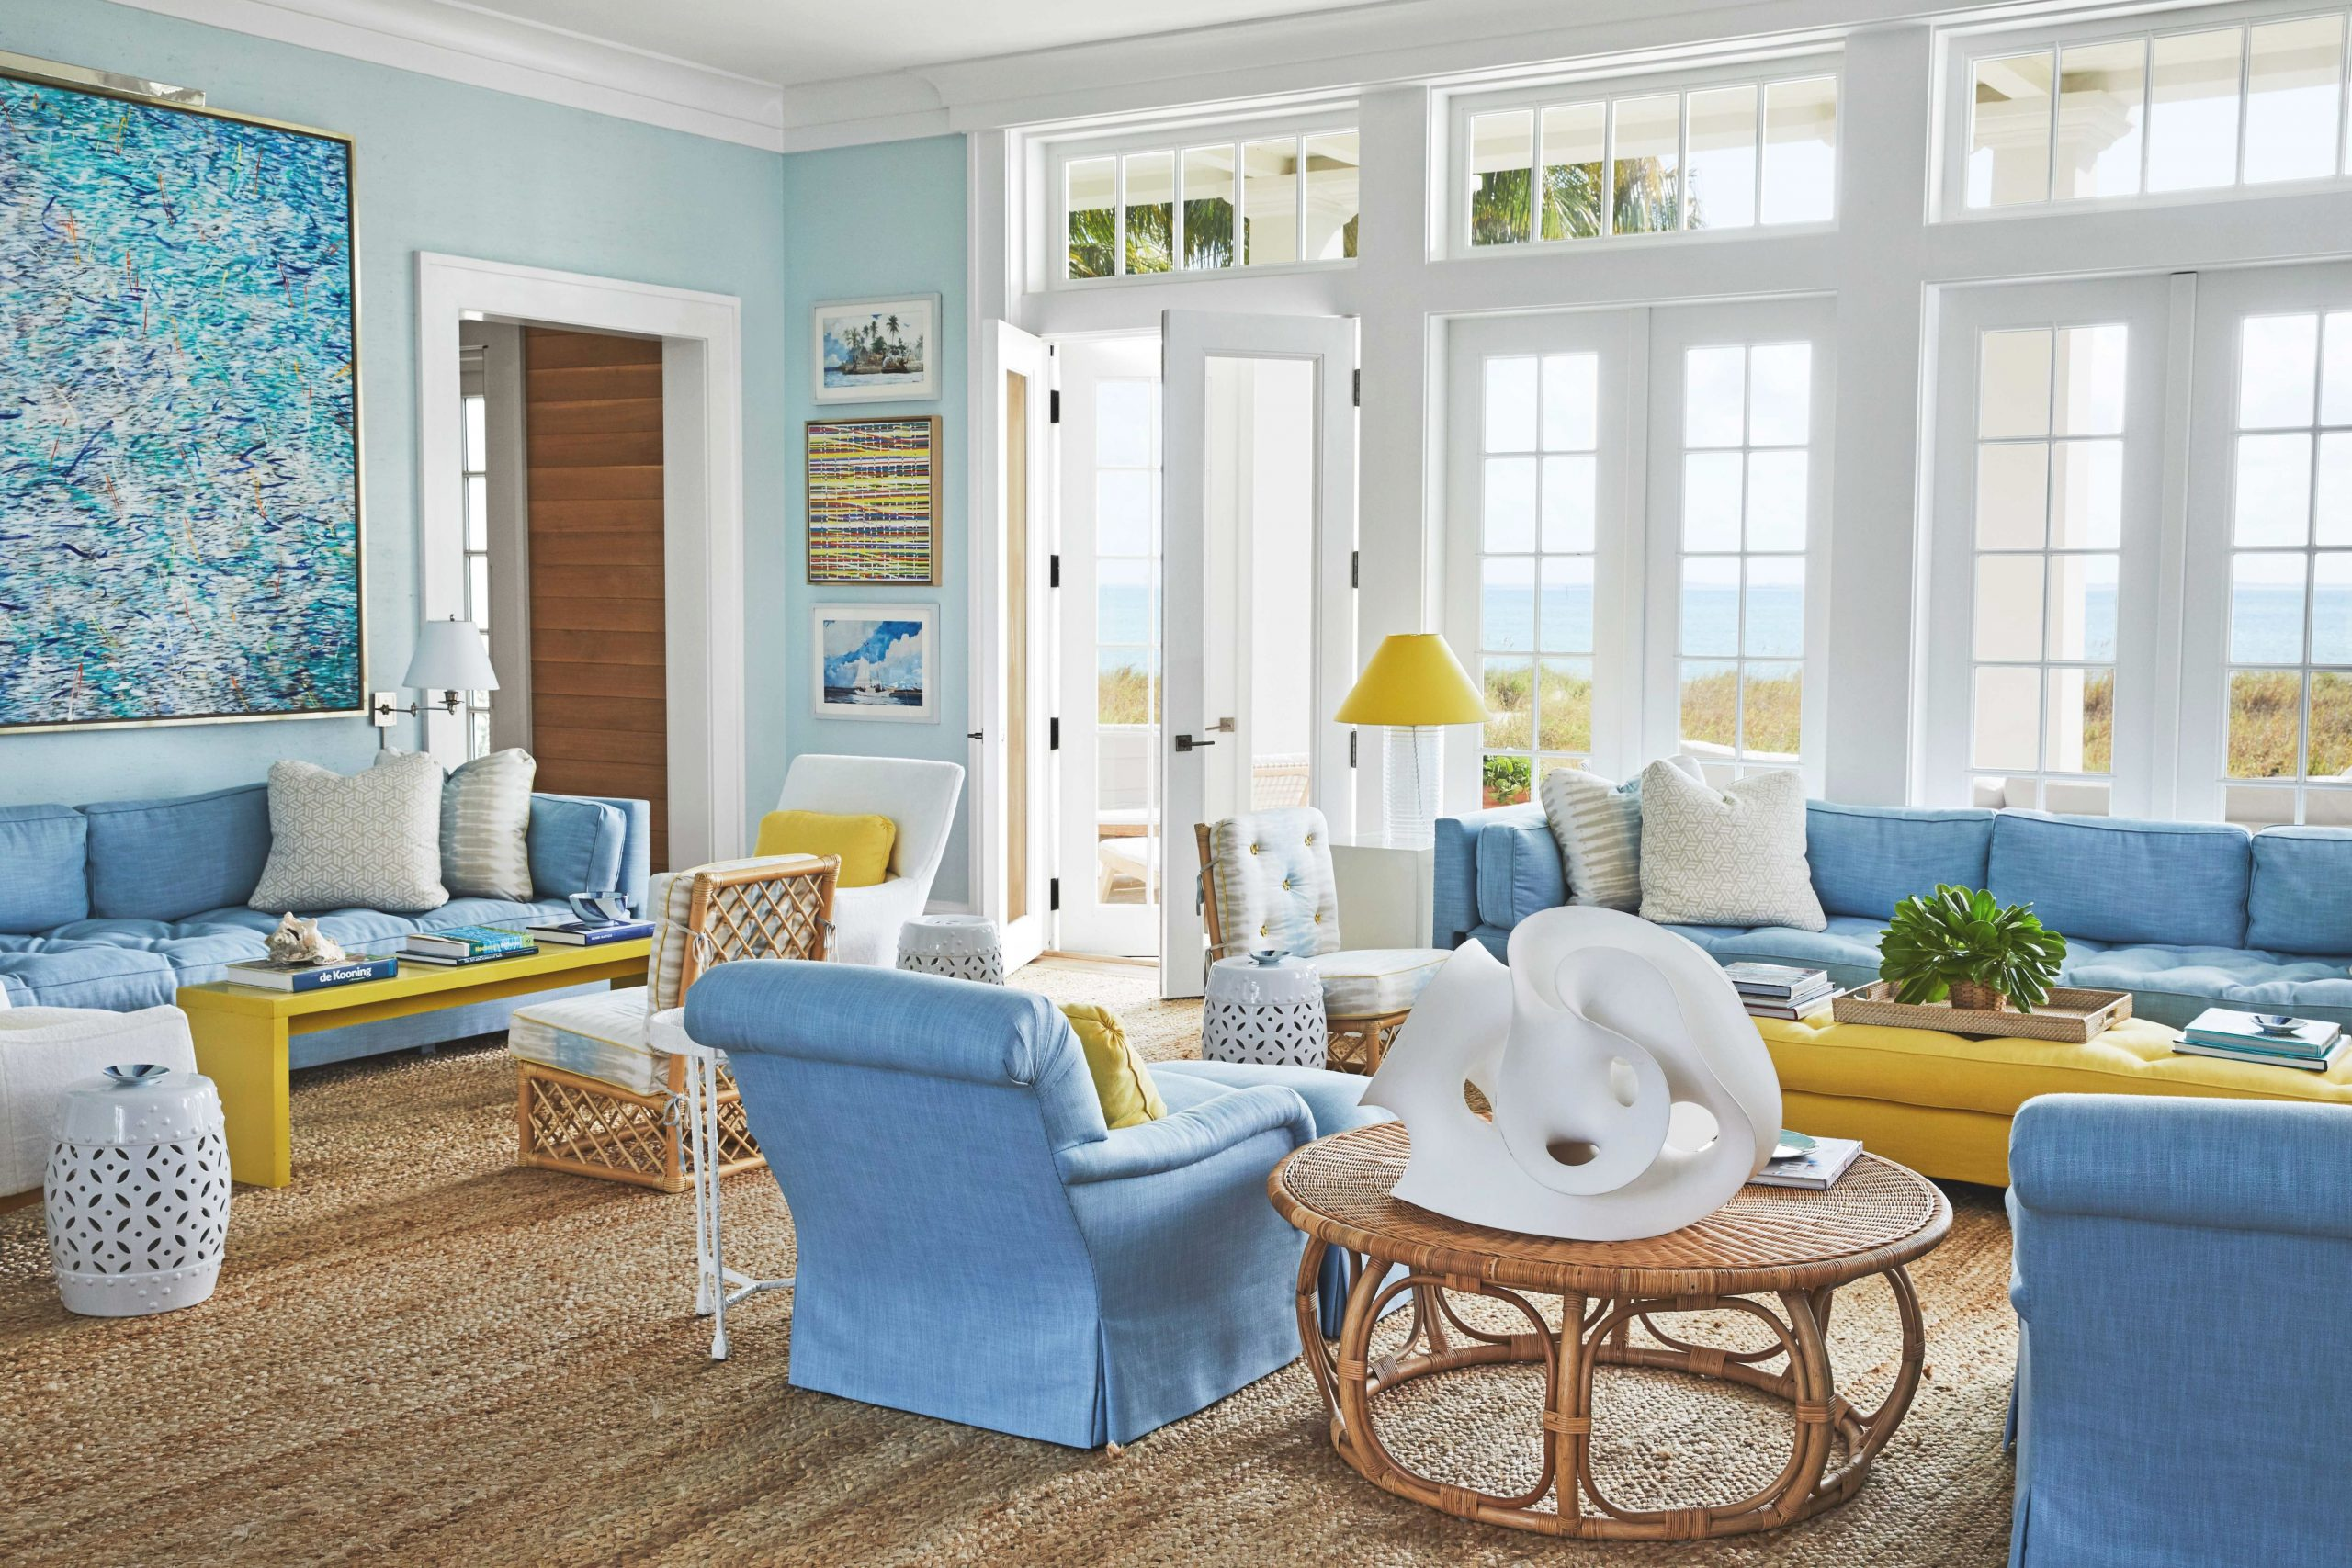 Best 21 Living Room Paint Colors - Beautiful Wall Color Ideas inside 15 Beautiful Ideas Blue And Yellow Living Room